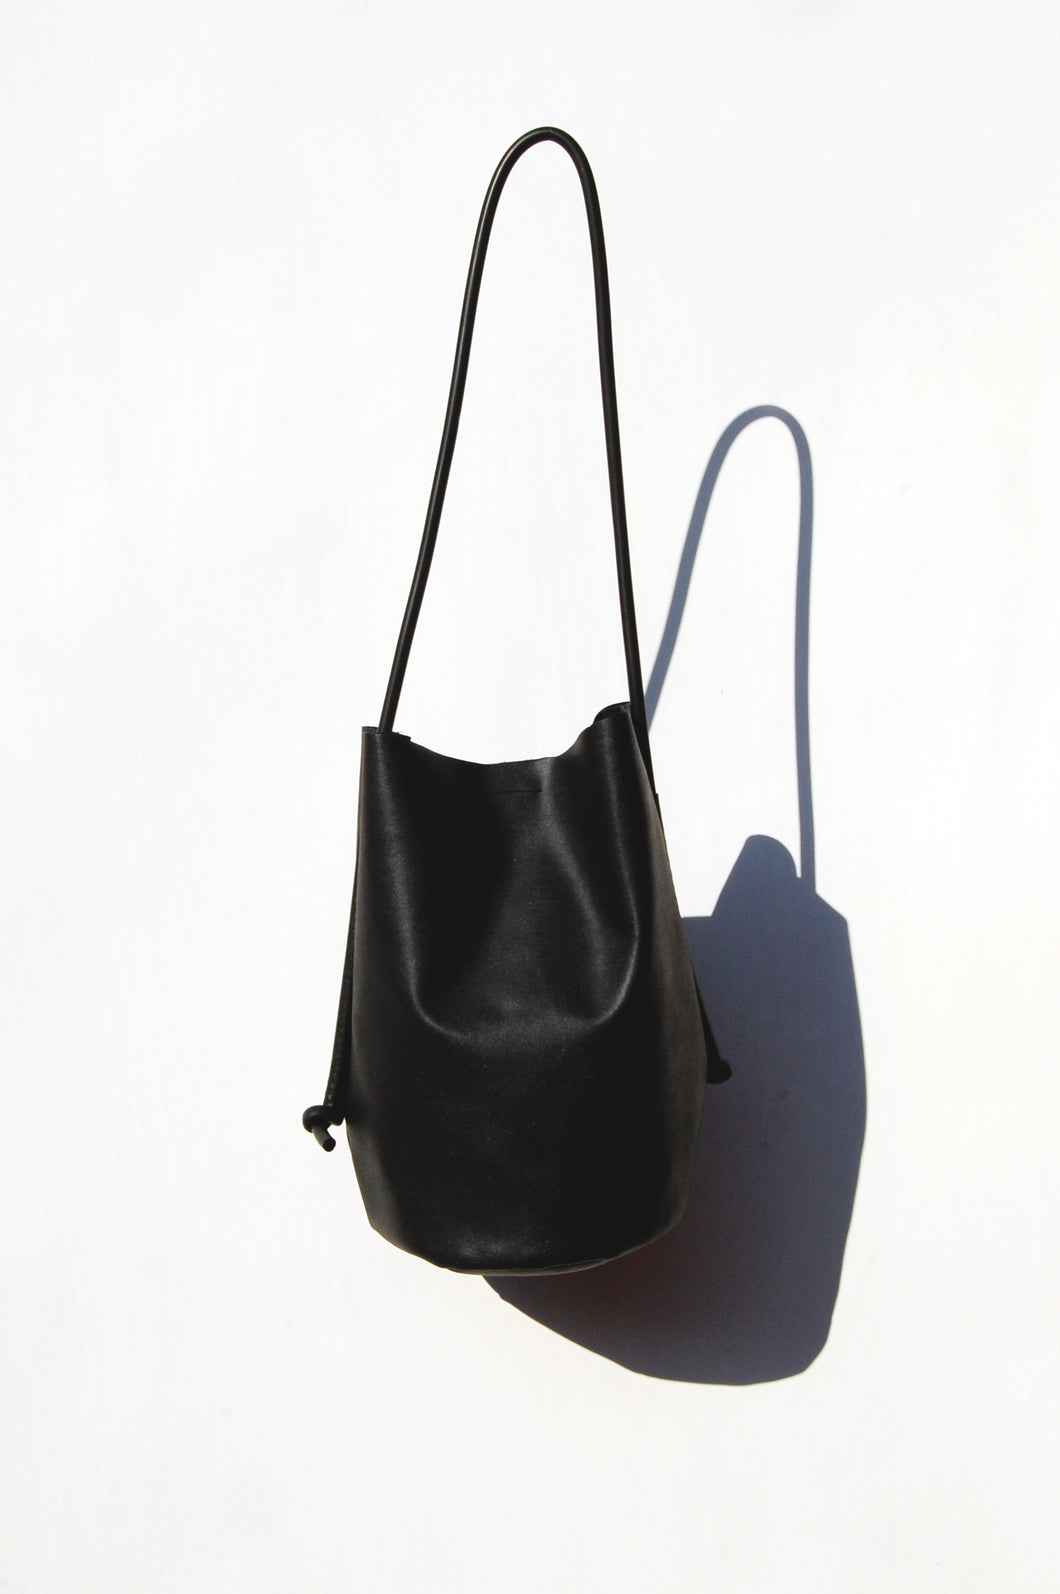 Black bucket bag minimal faux leather handmade by Melì